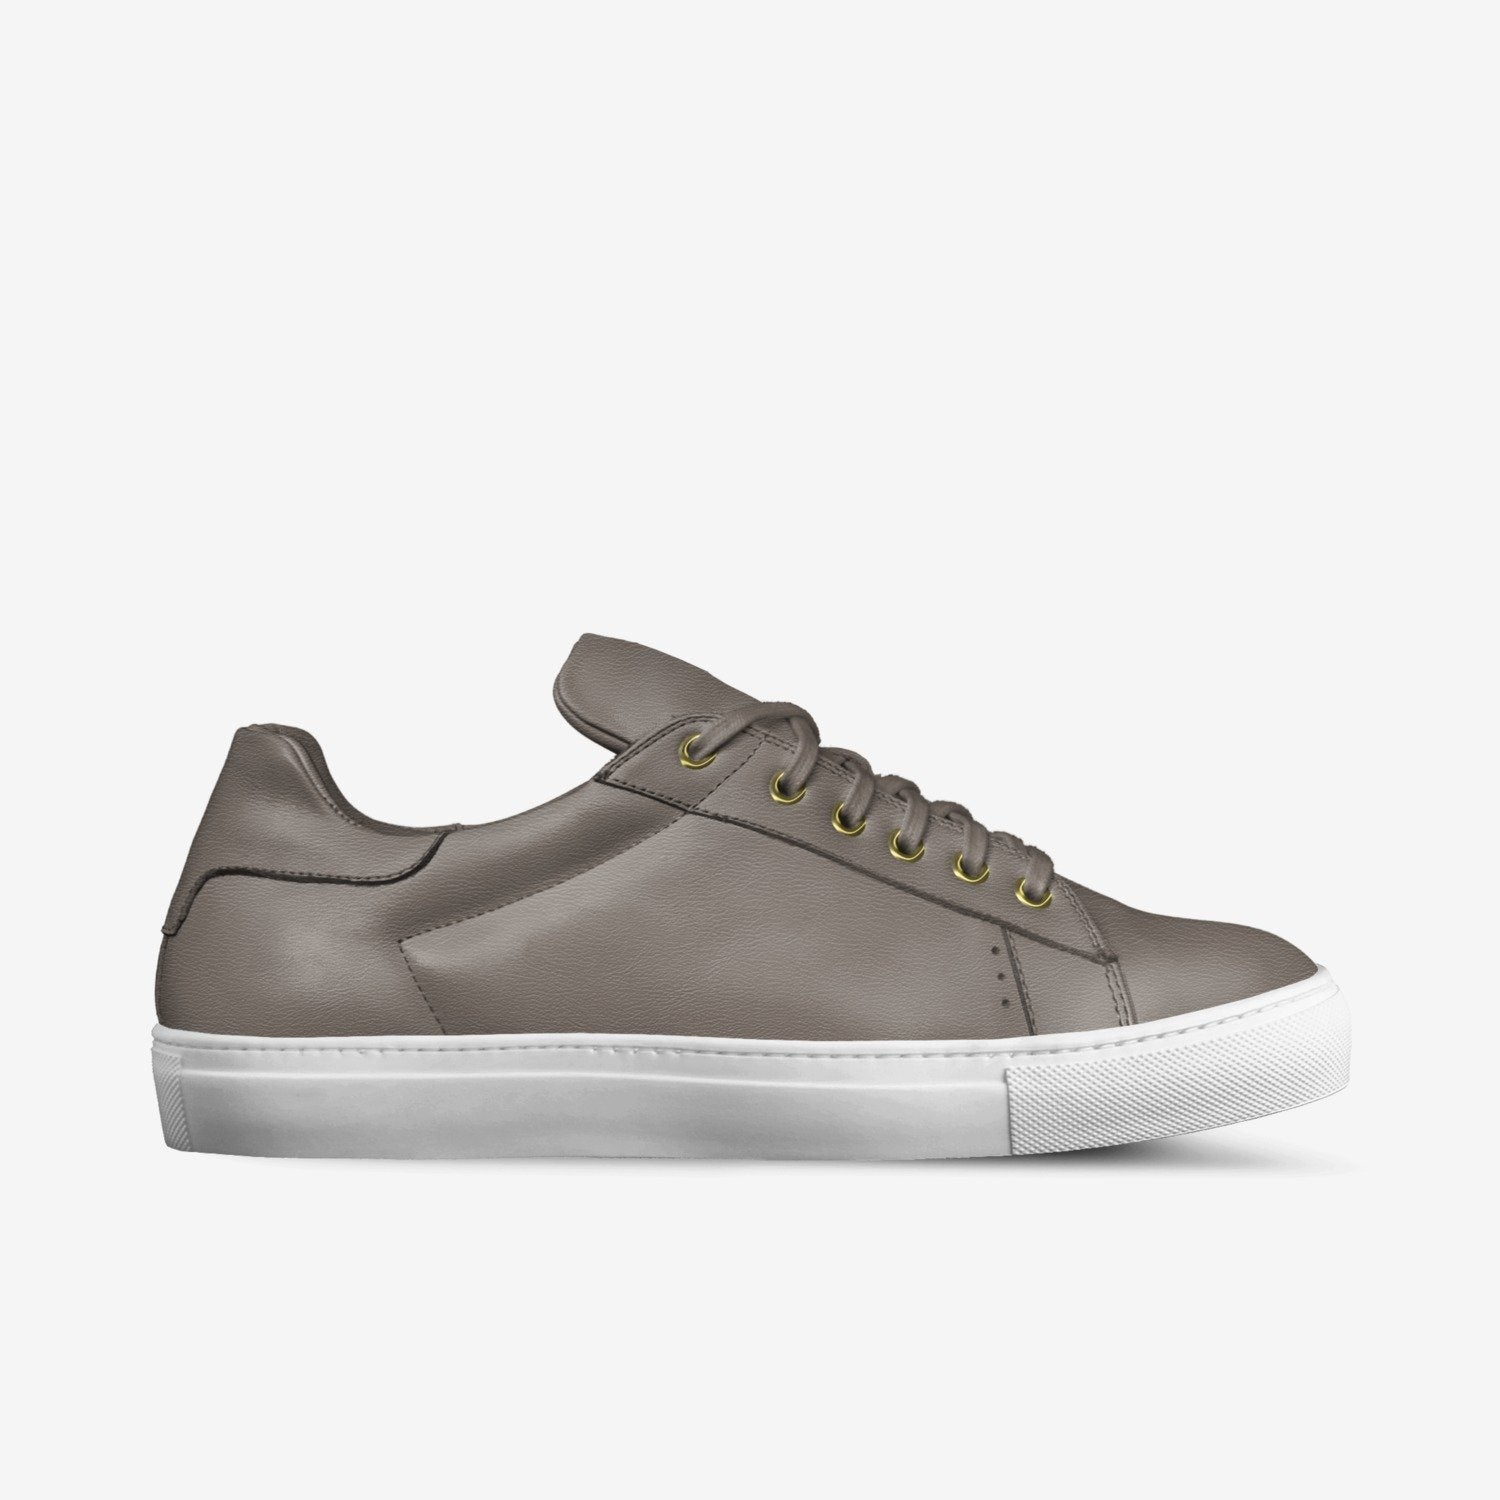 Poor Little Rich Boy Lorenzo Sneakers in Clay - Poor Little Rich Boy Men's Shoes - Plrbclothing.com